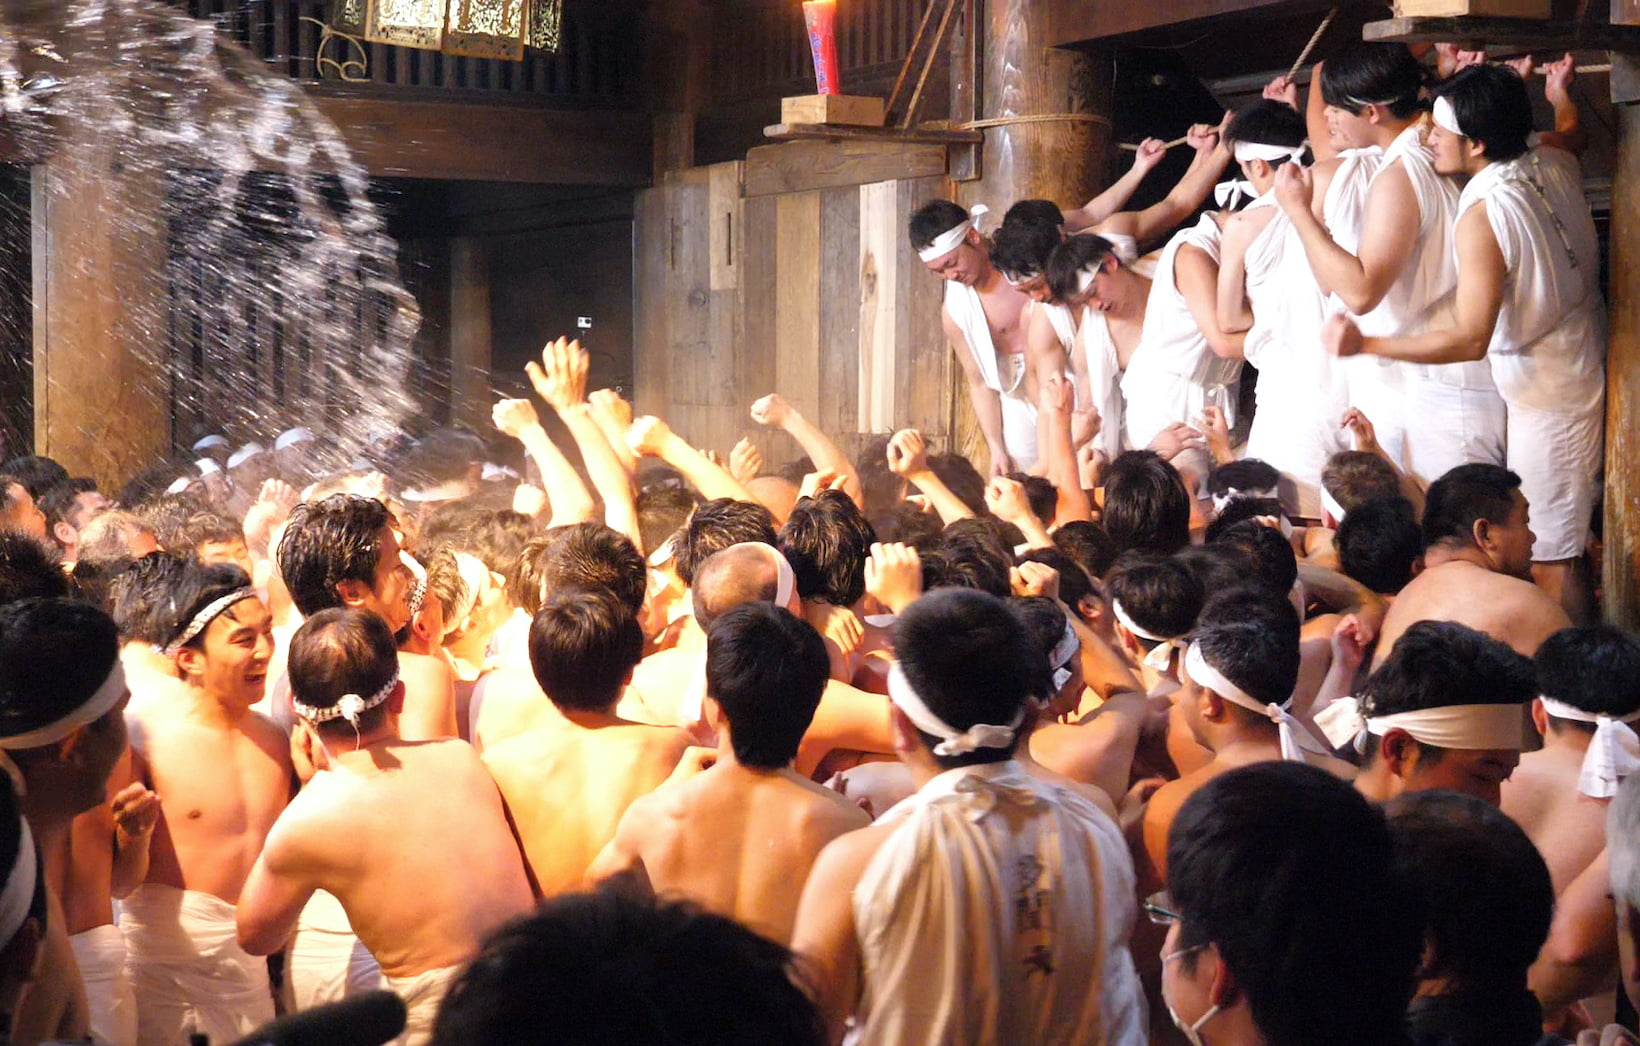 Japan's 1200-year-old Three Great Bizarre Festivals